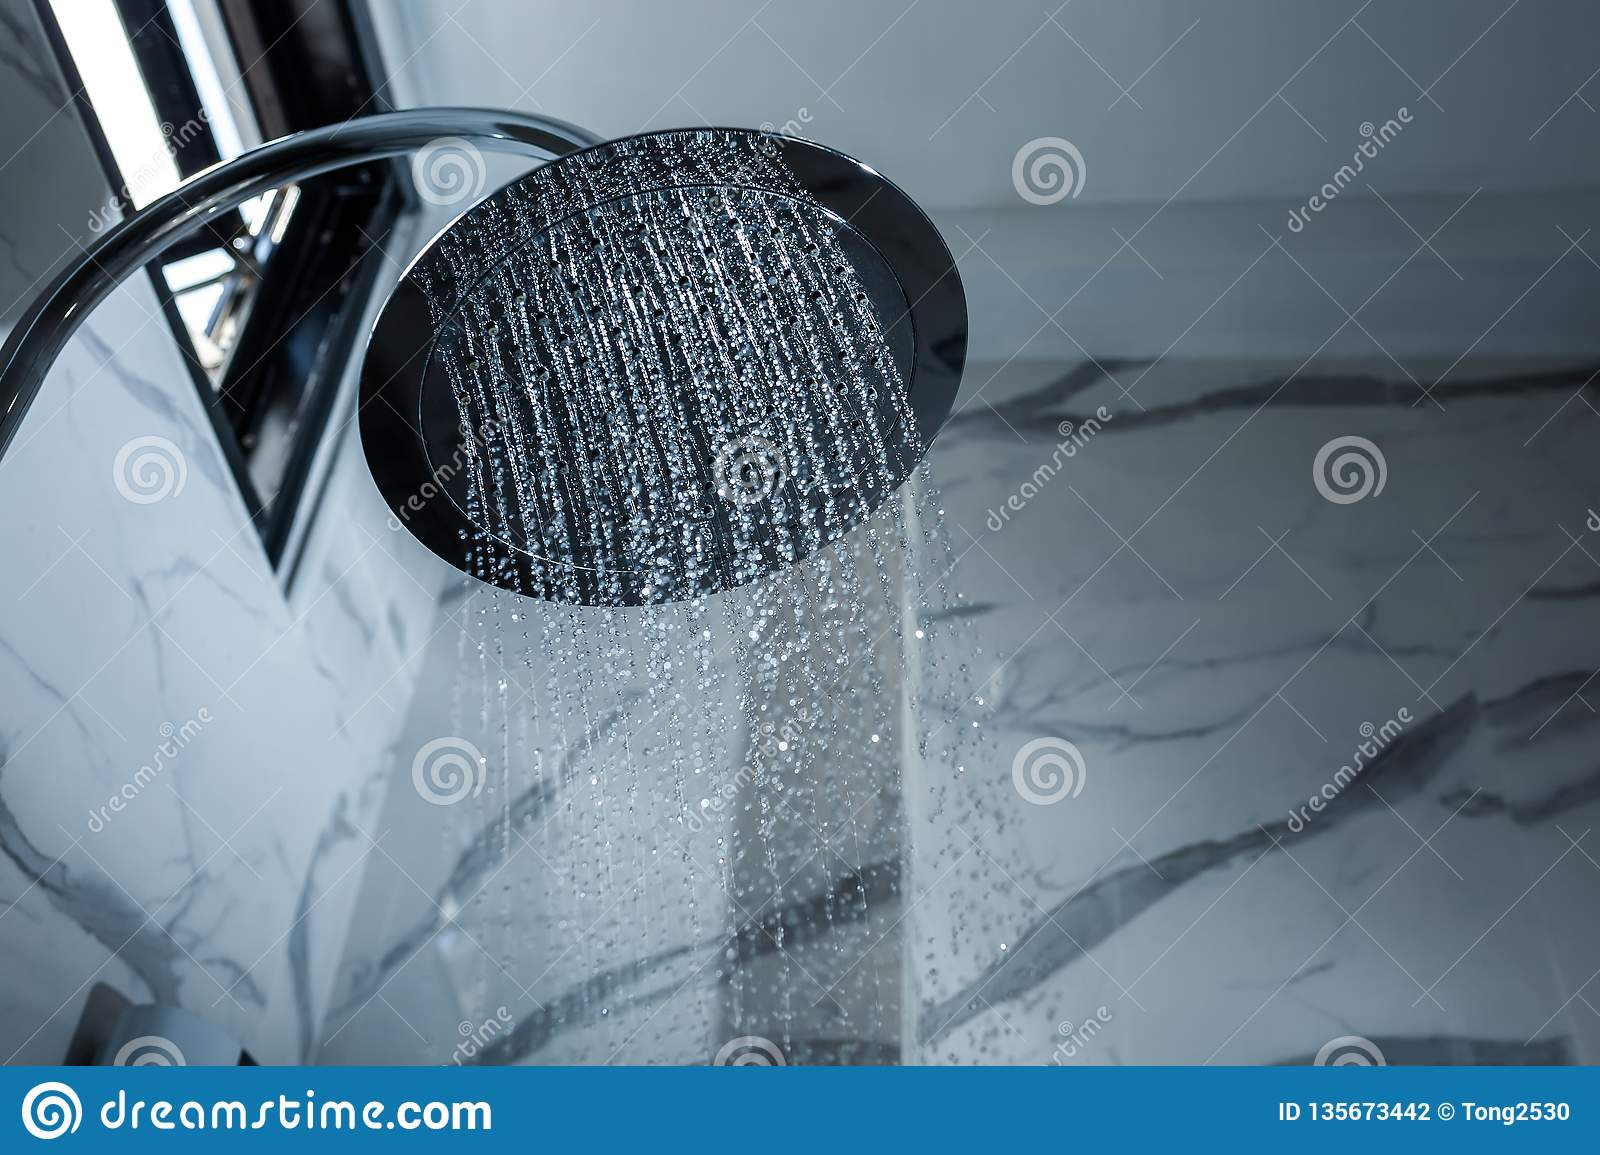 [shower head] shower head in bathroom with water drops flowing